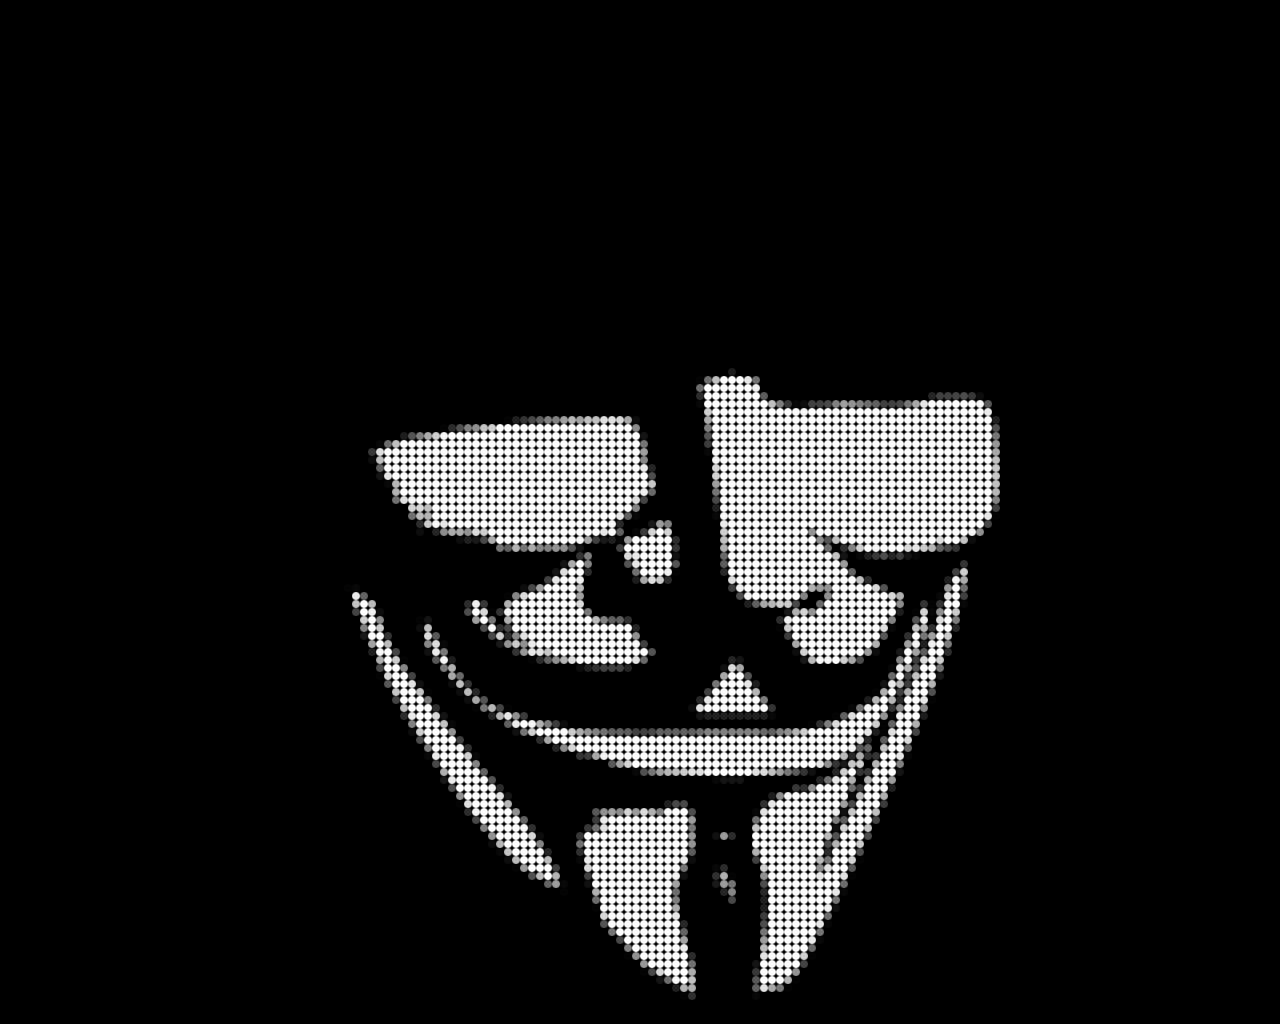 Free Download For Vendetta V For Vendetta Wallpaper 13512443